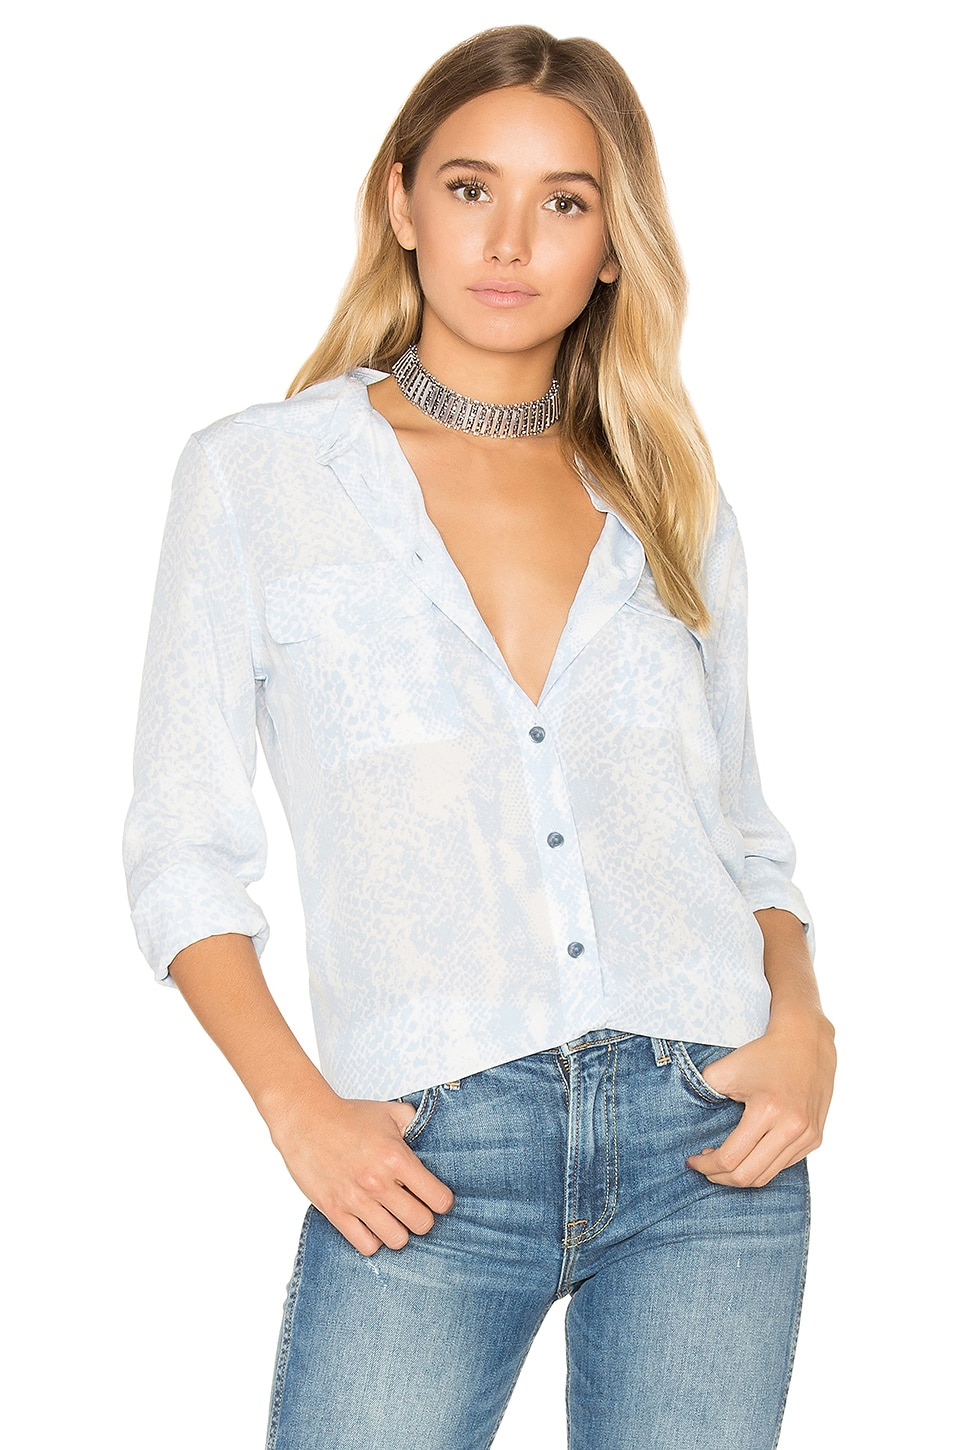 Equipment Slim Signature Snake Print Button Up in Periwinkle